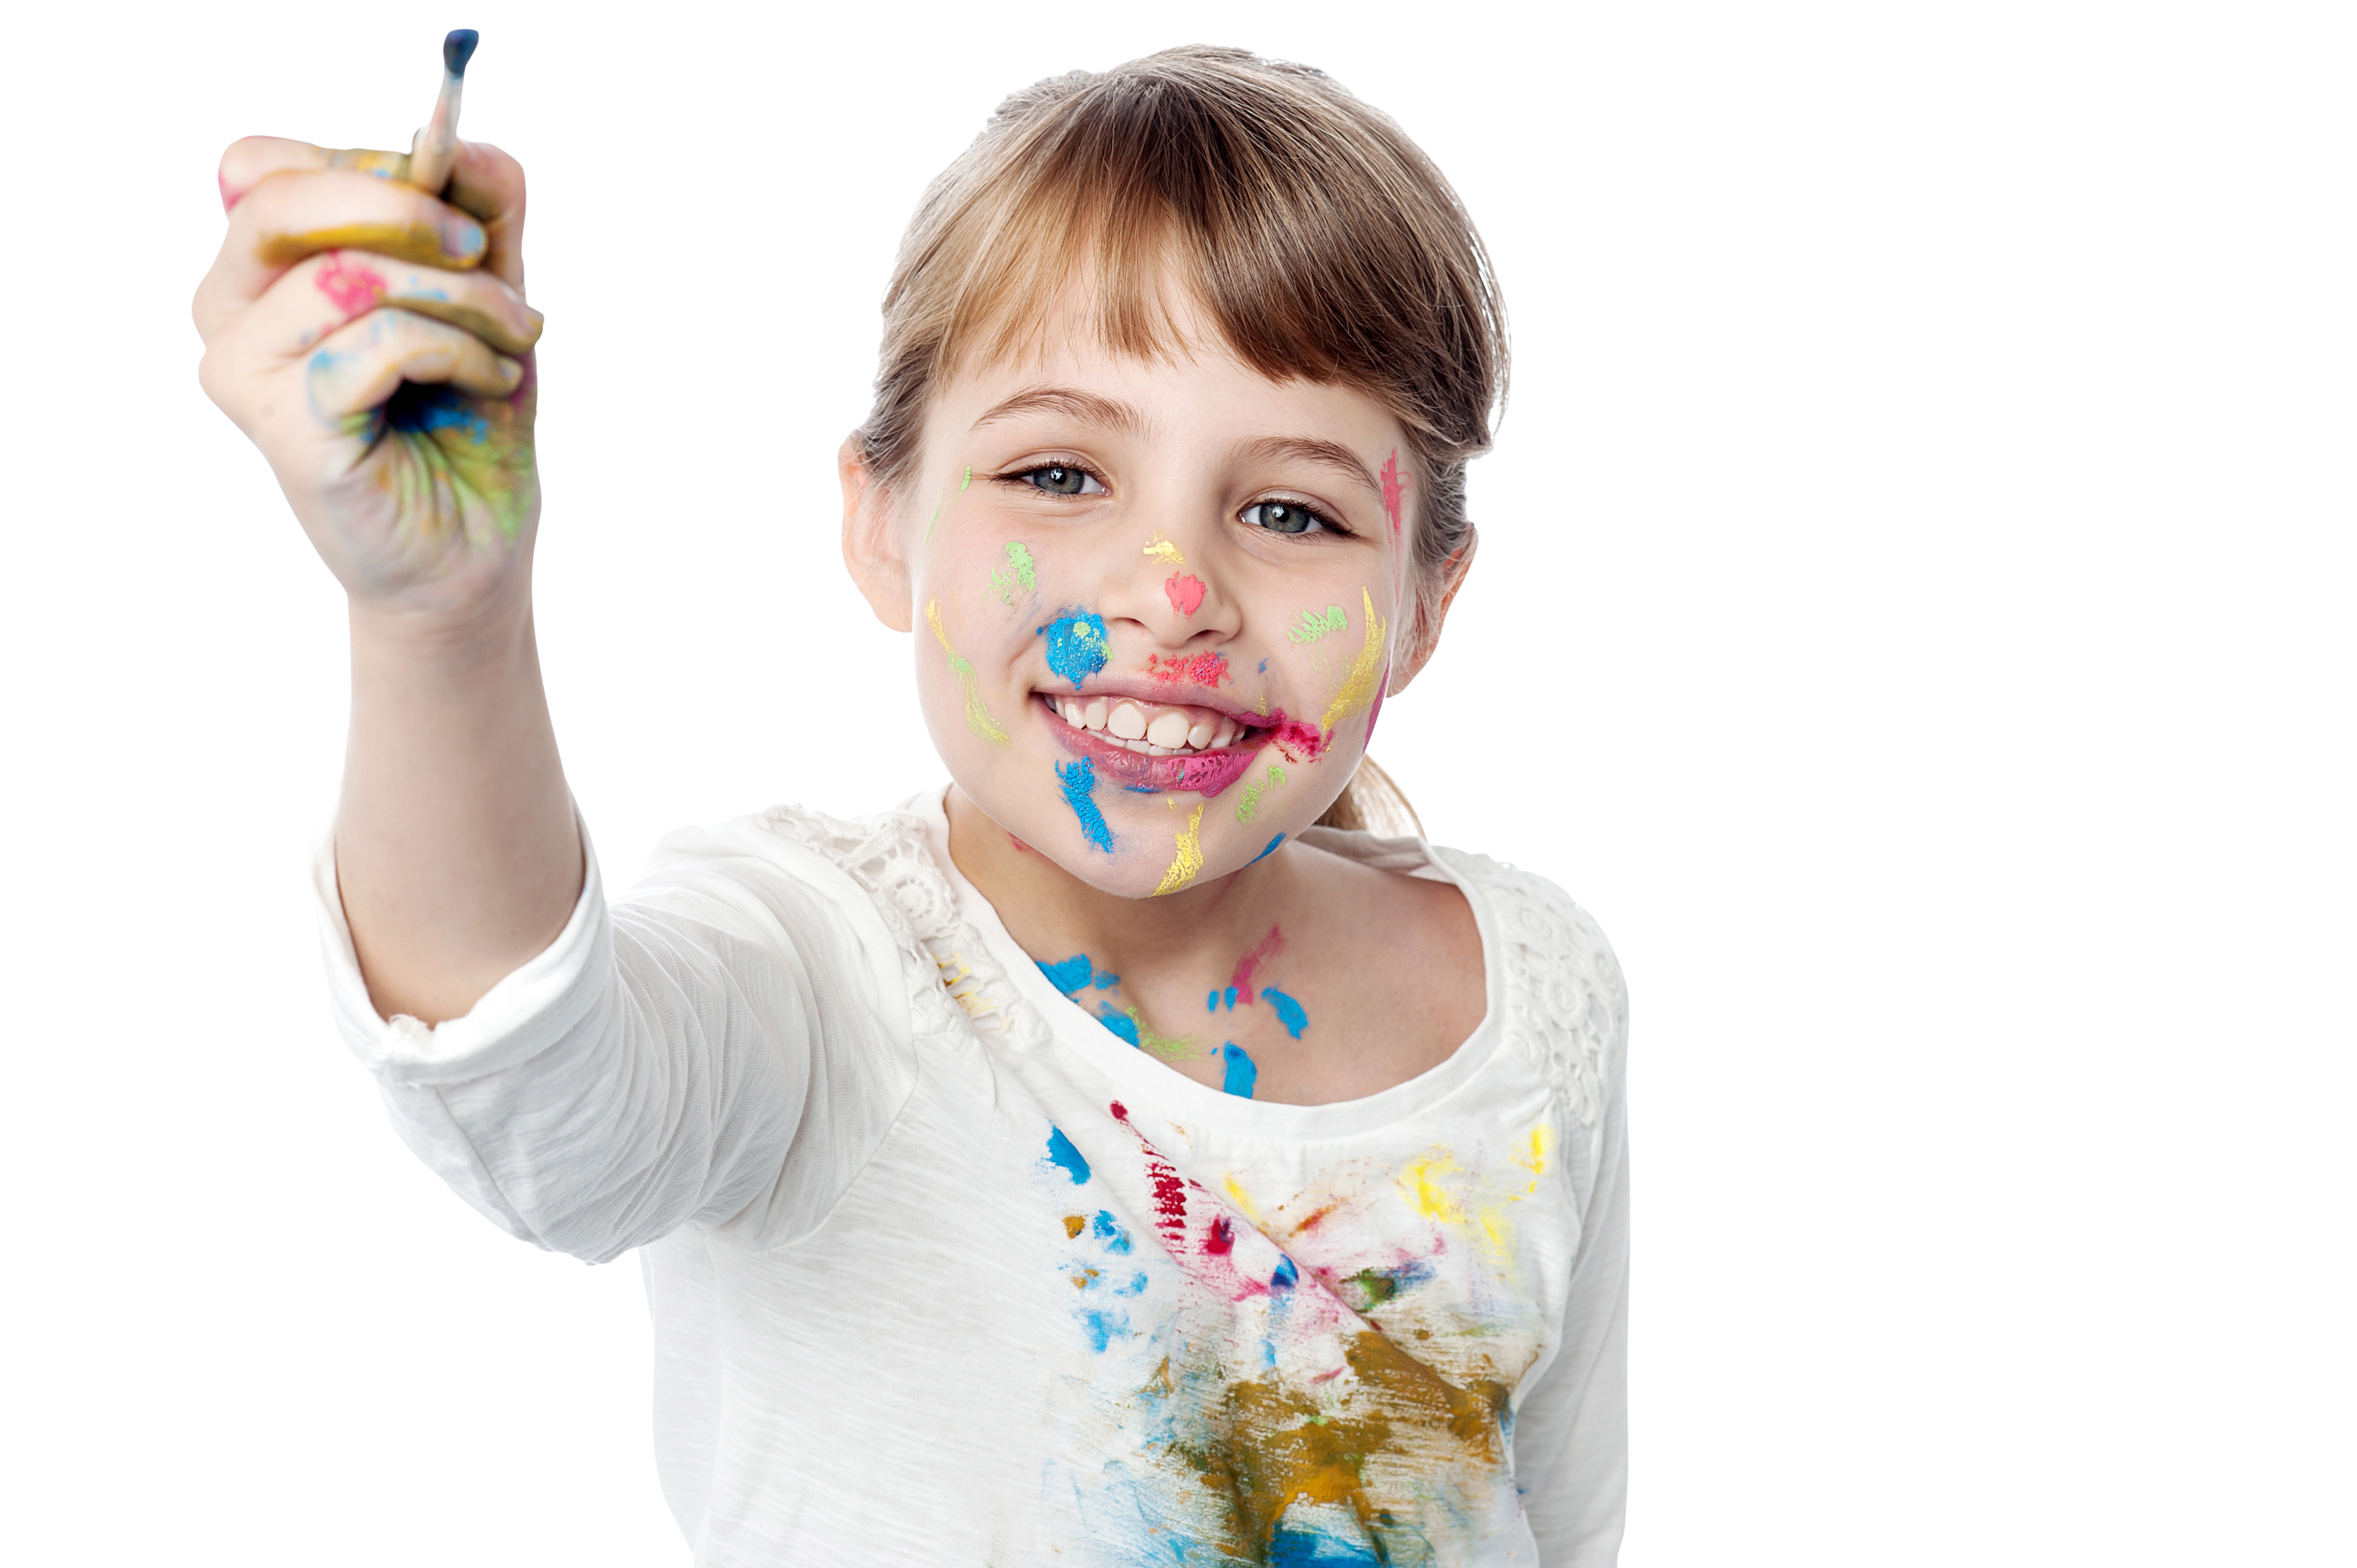 Little Girl Hands Paint PNG Image